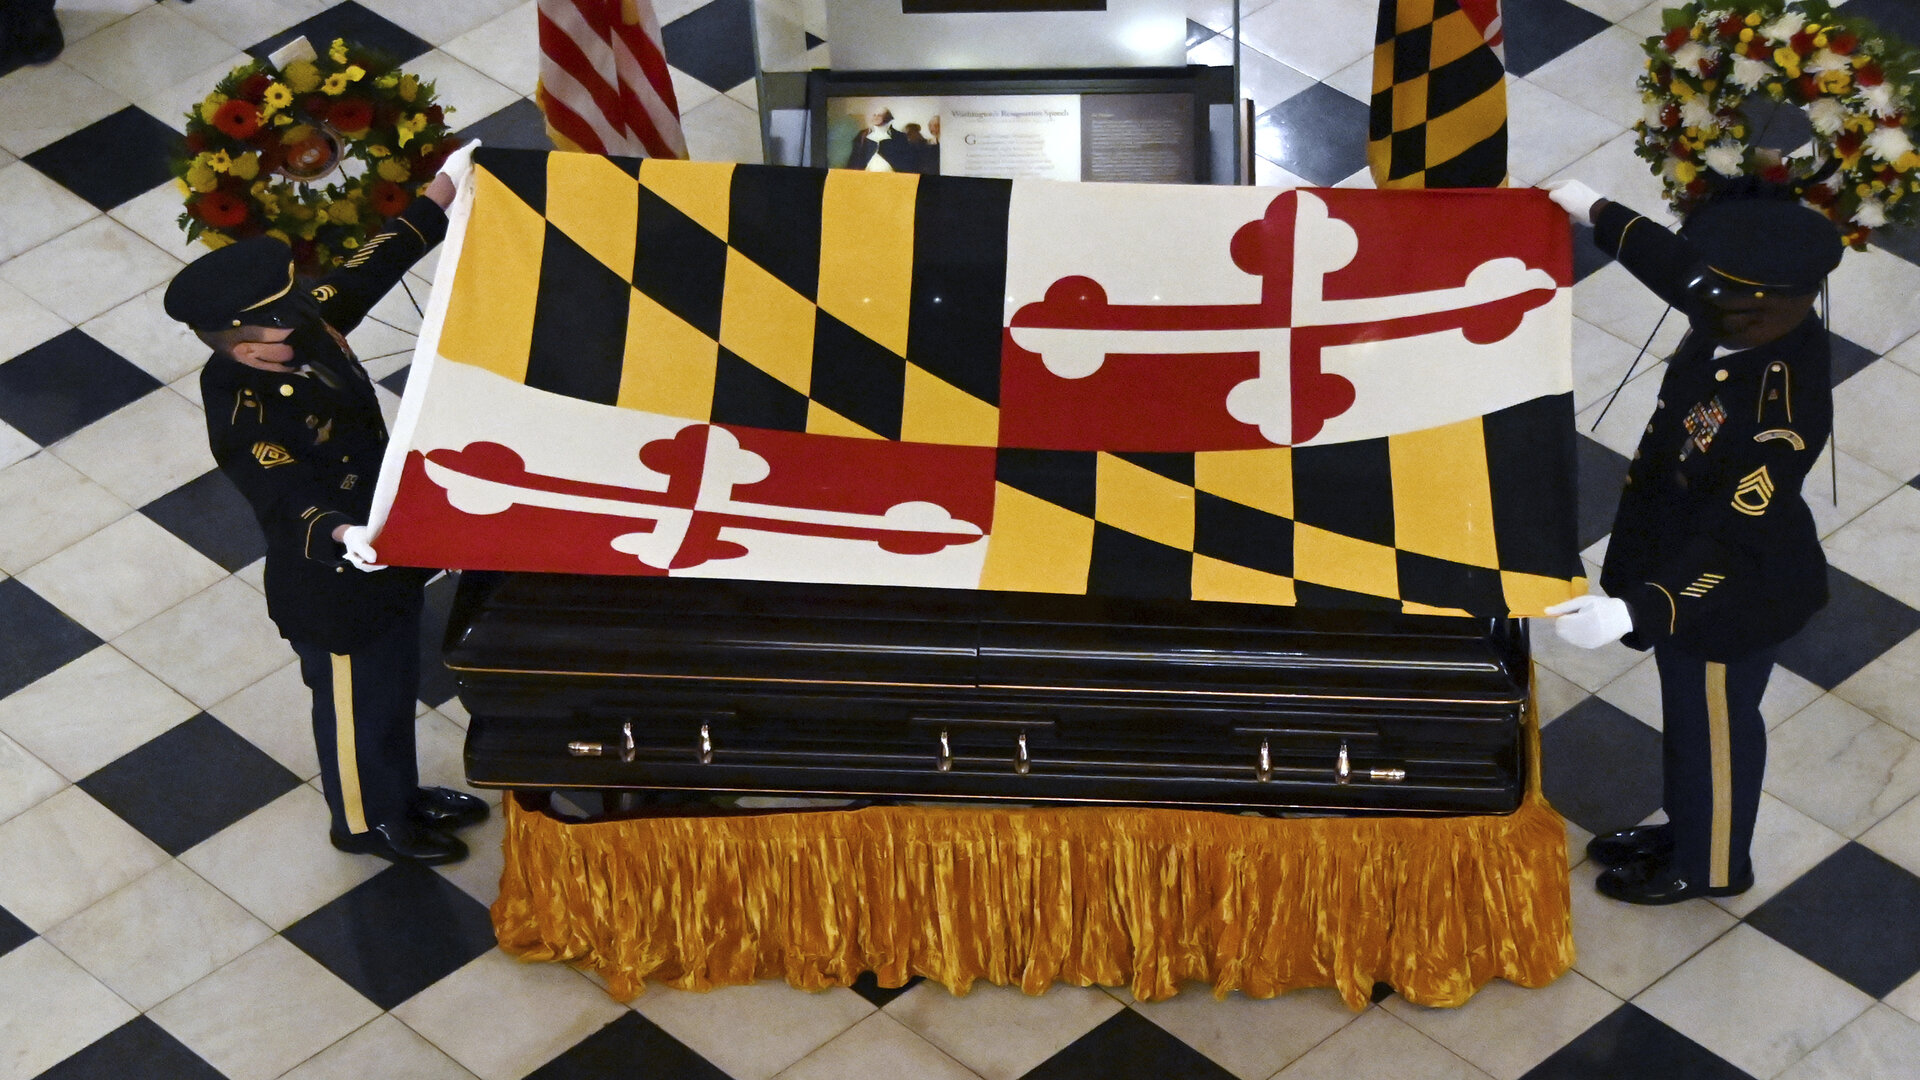 Maryland officials to remember longtime Senate president